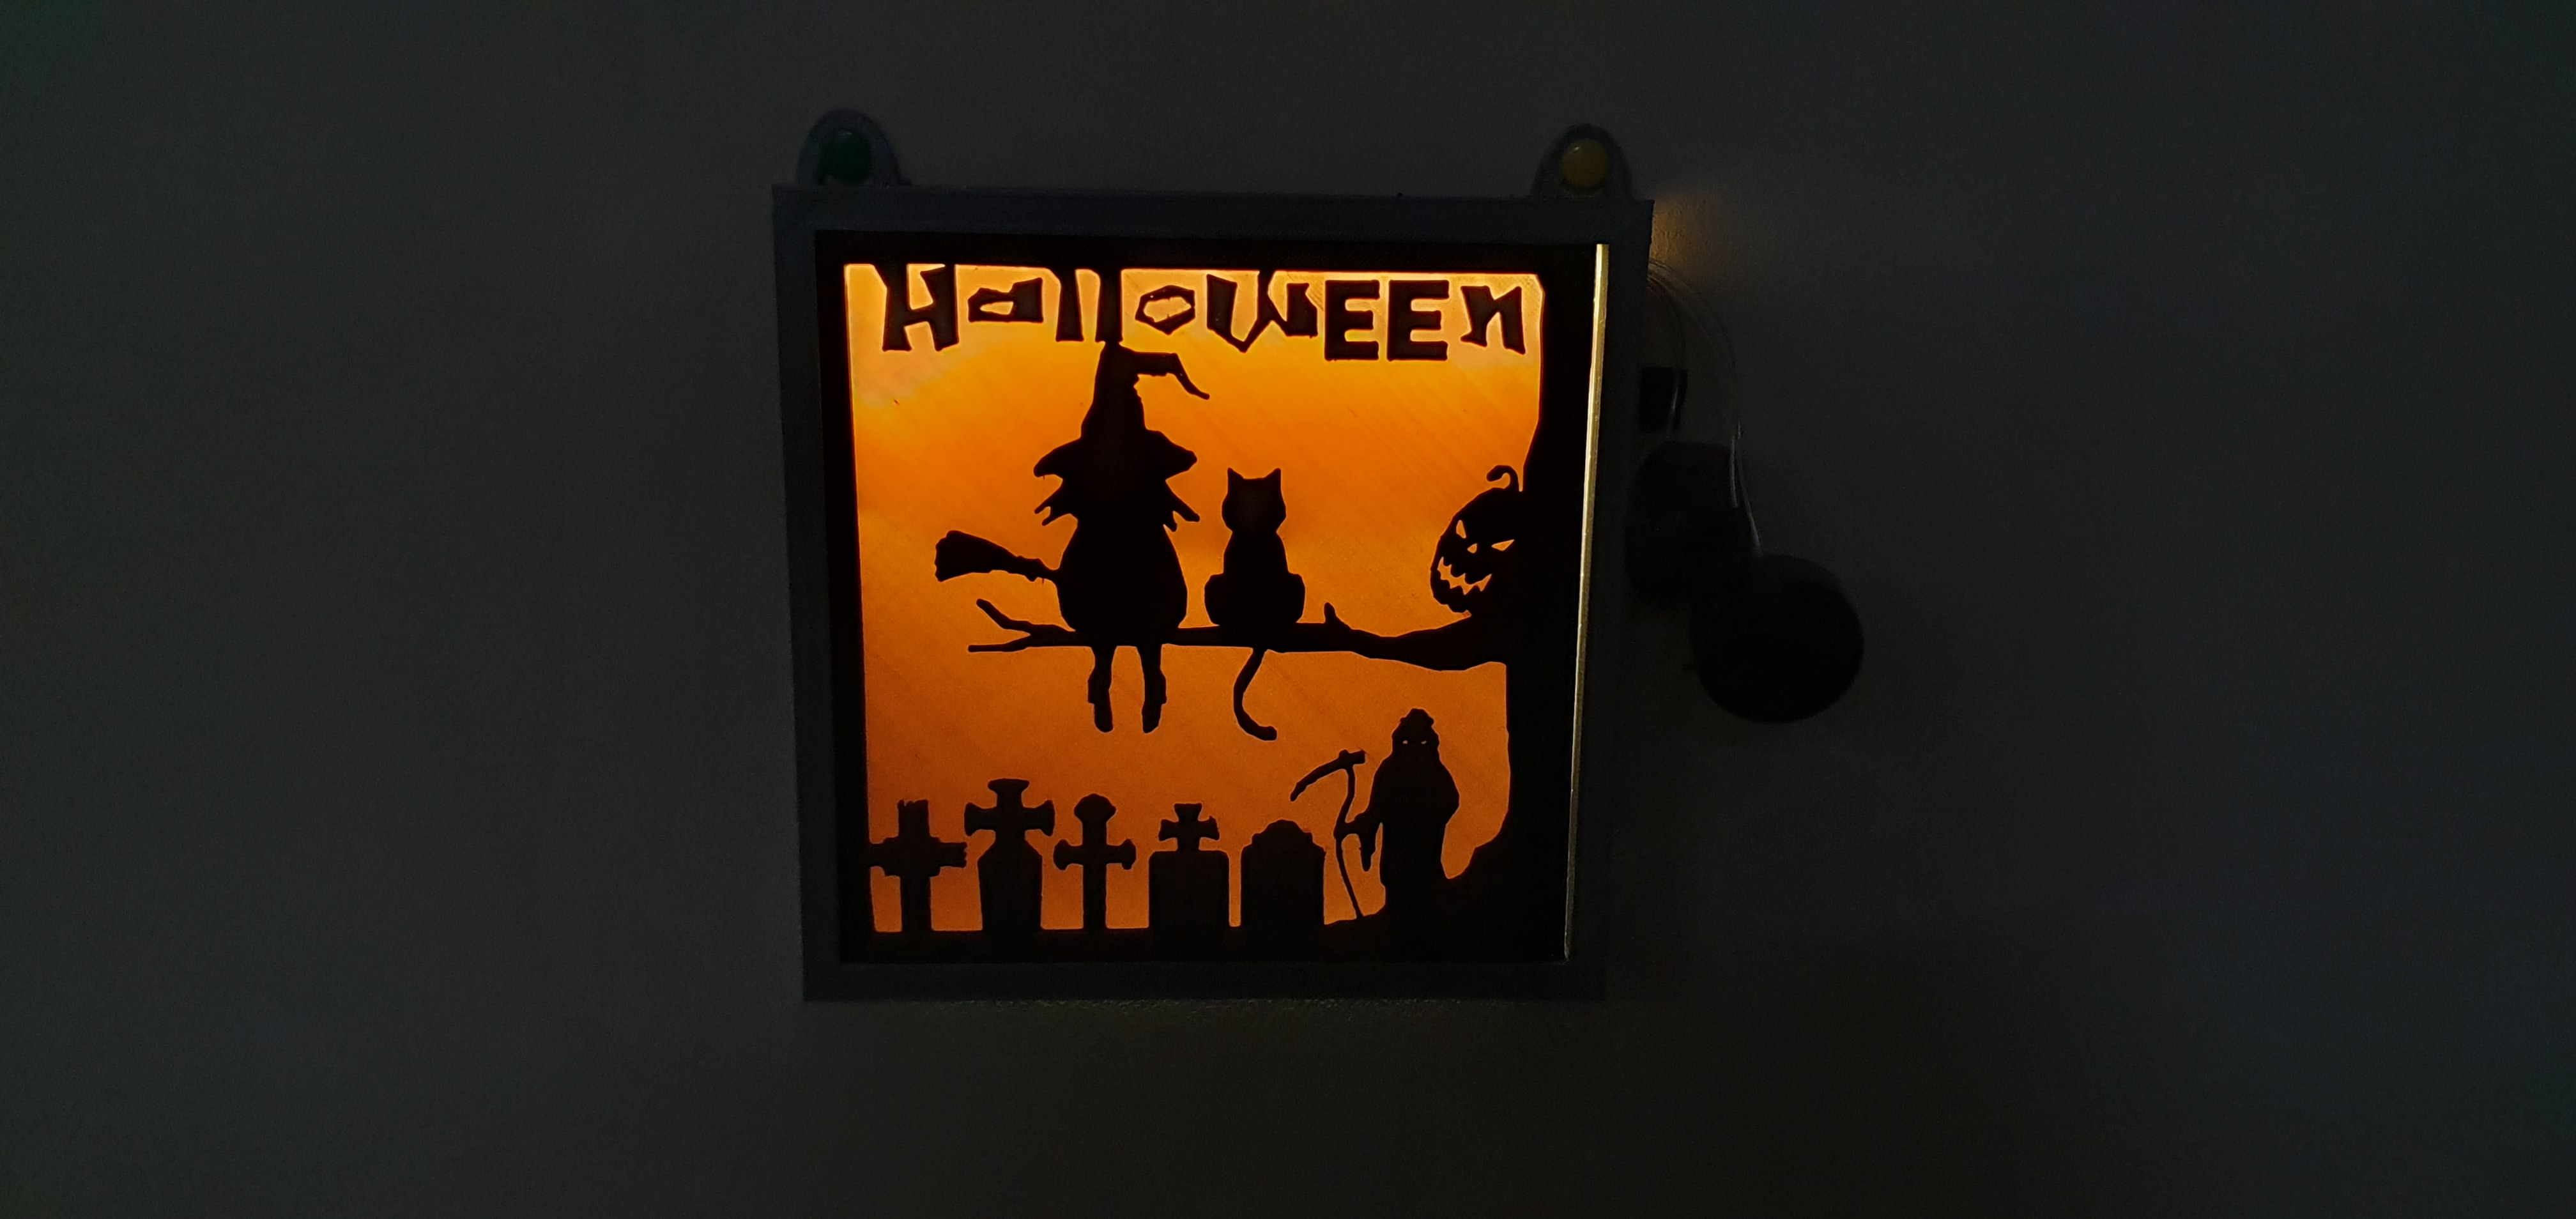 20191105_114103.jpg Download free STL file illuminated halloween frame • 3D printing model, catf3d